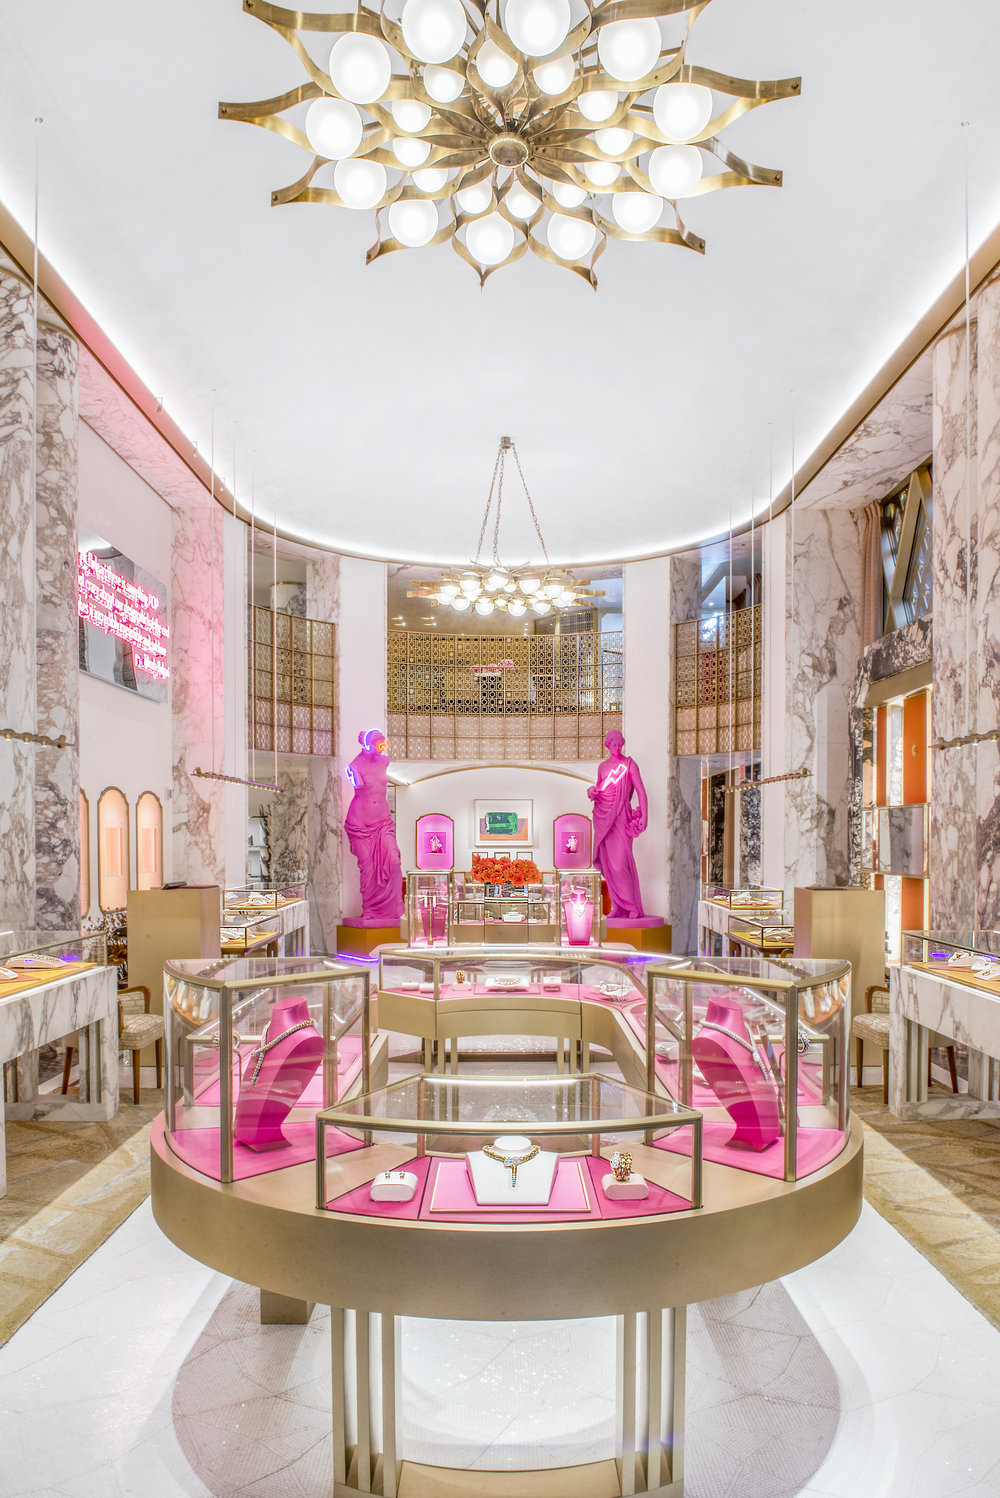 BVLGARI - WILD POP Interior f2b - photo by Andrew Werner, AHW_5529.jpg